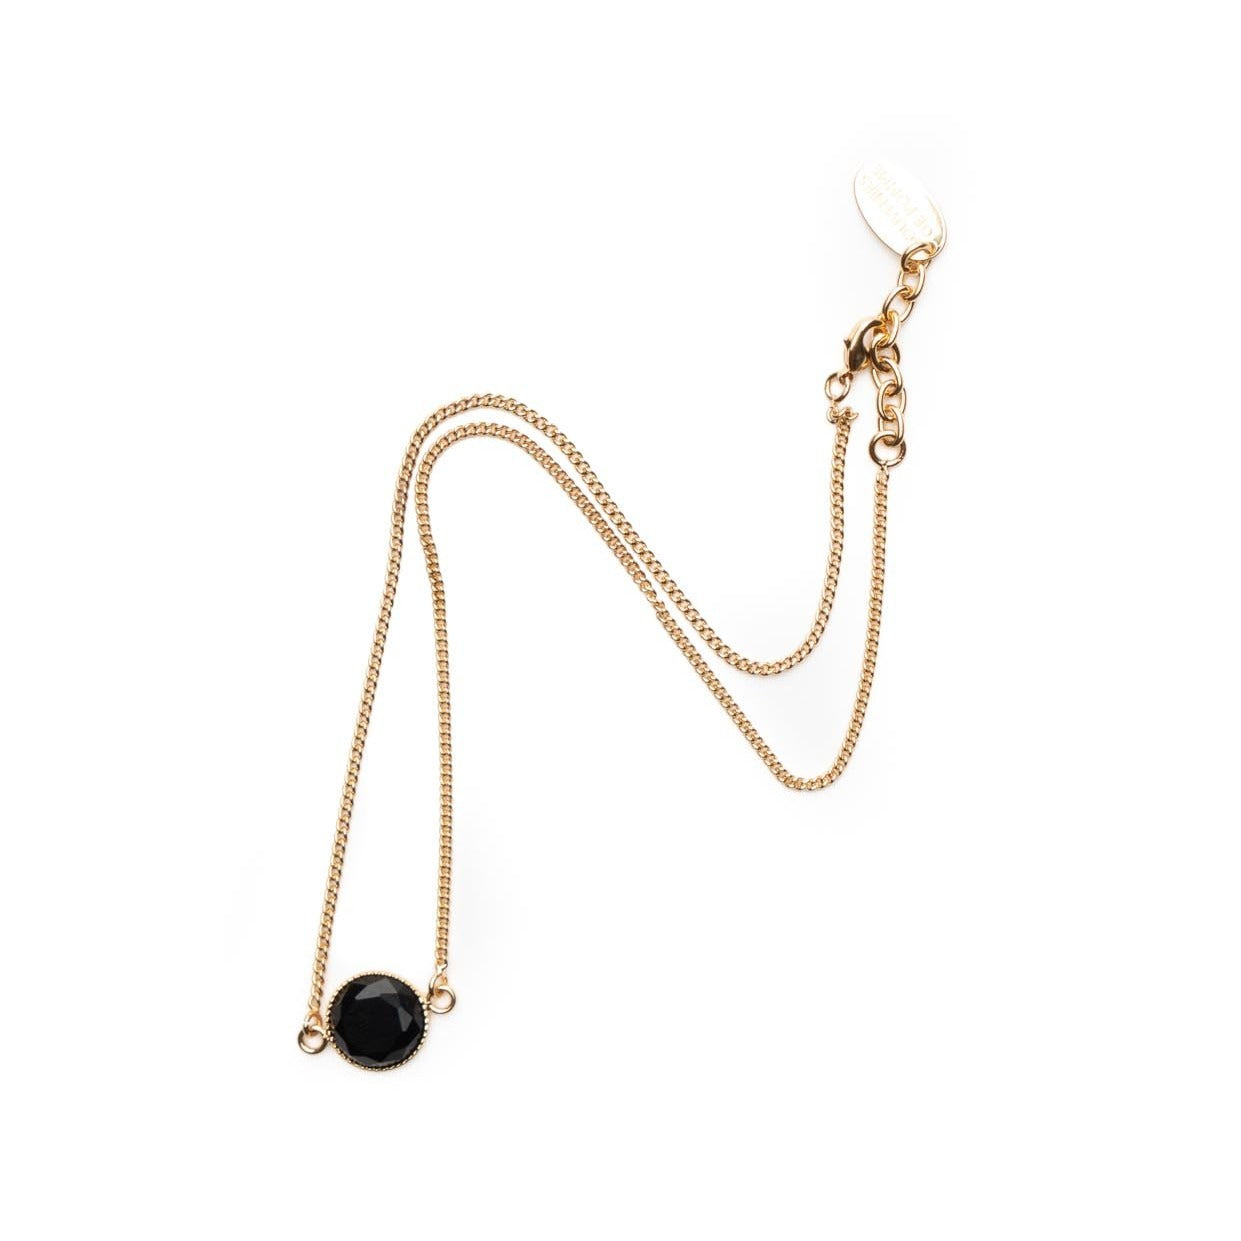 Rosi black stone alone necklace